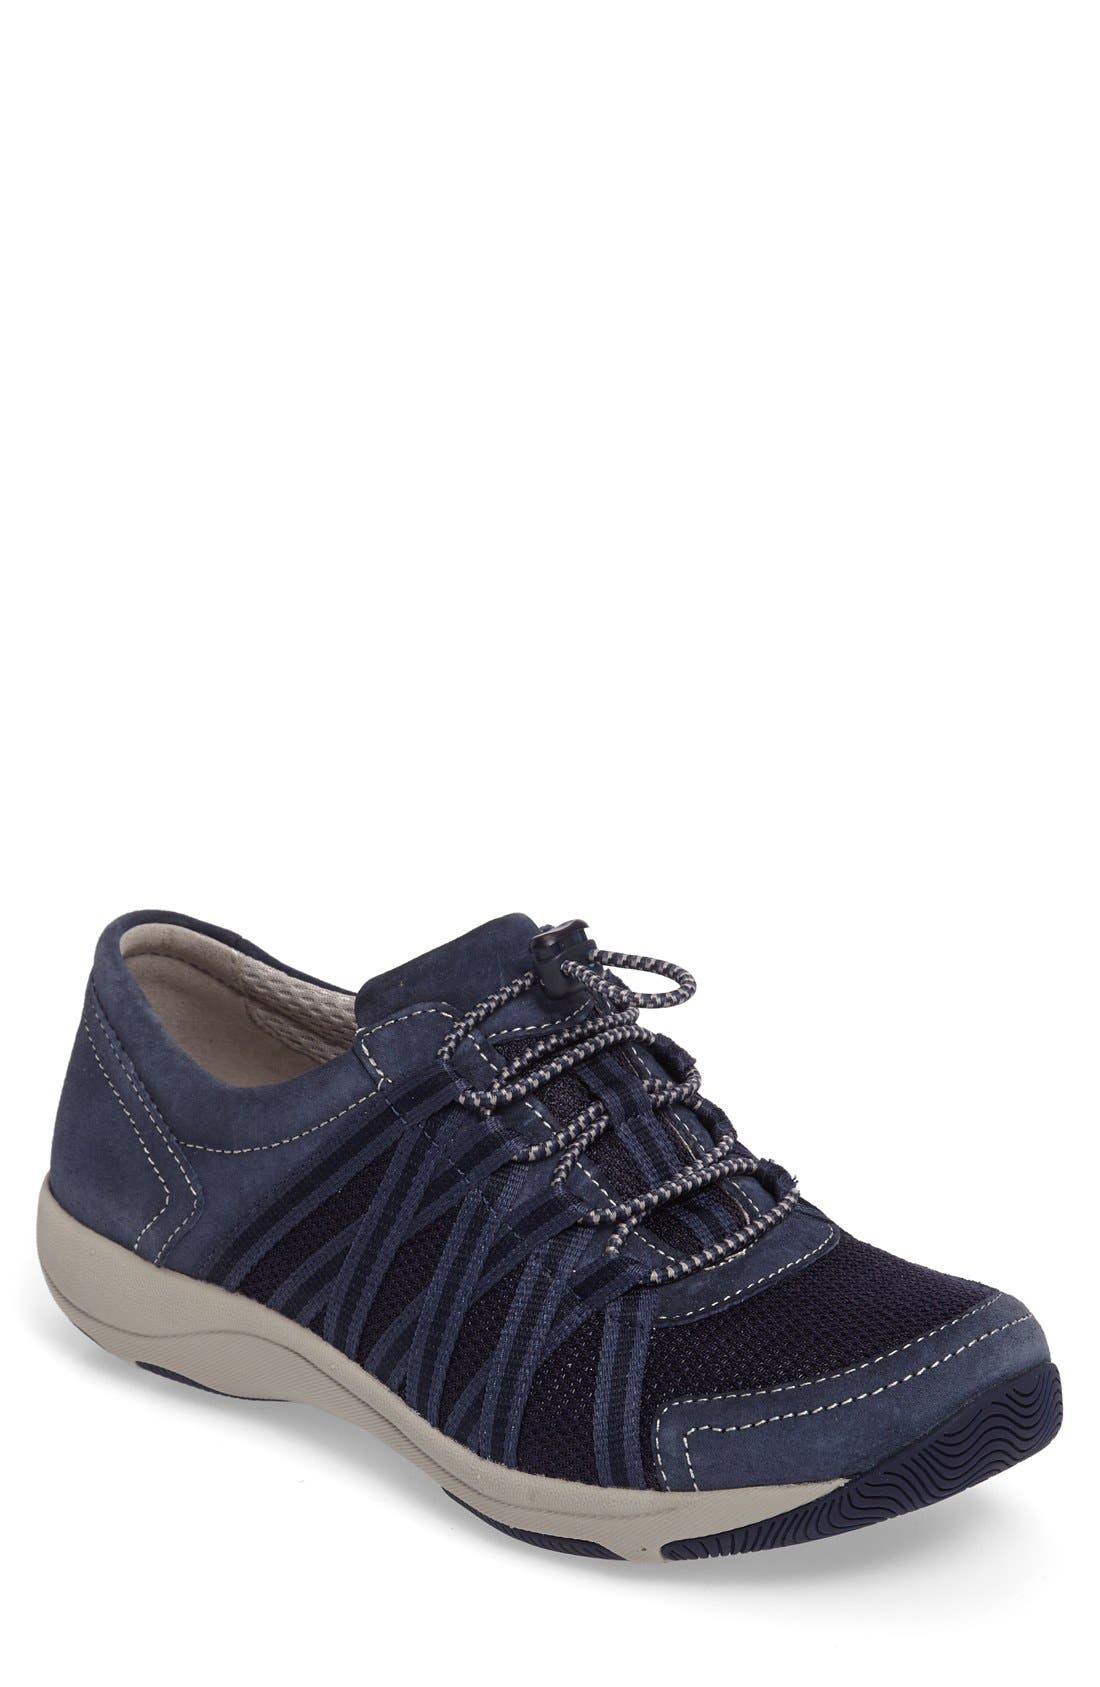 Halifax Collection Honor Sneaker,                             Main thumbnail 7, color,